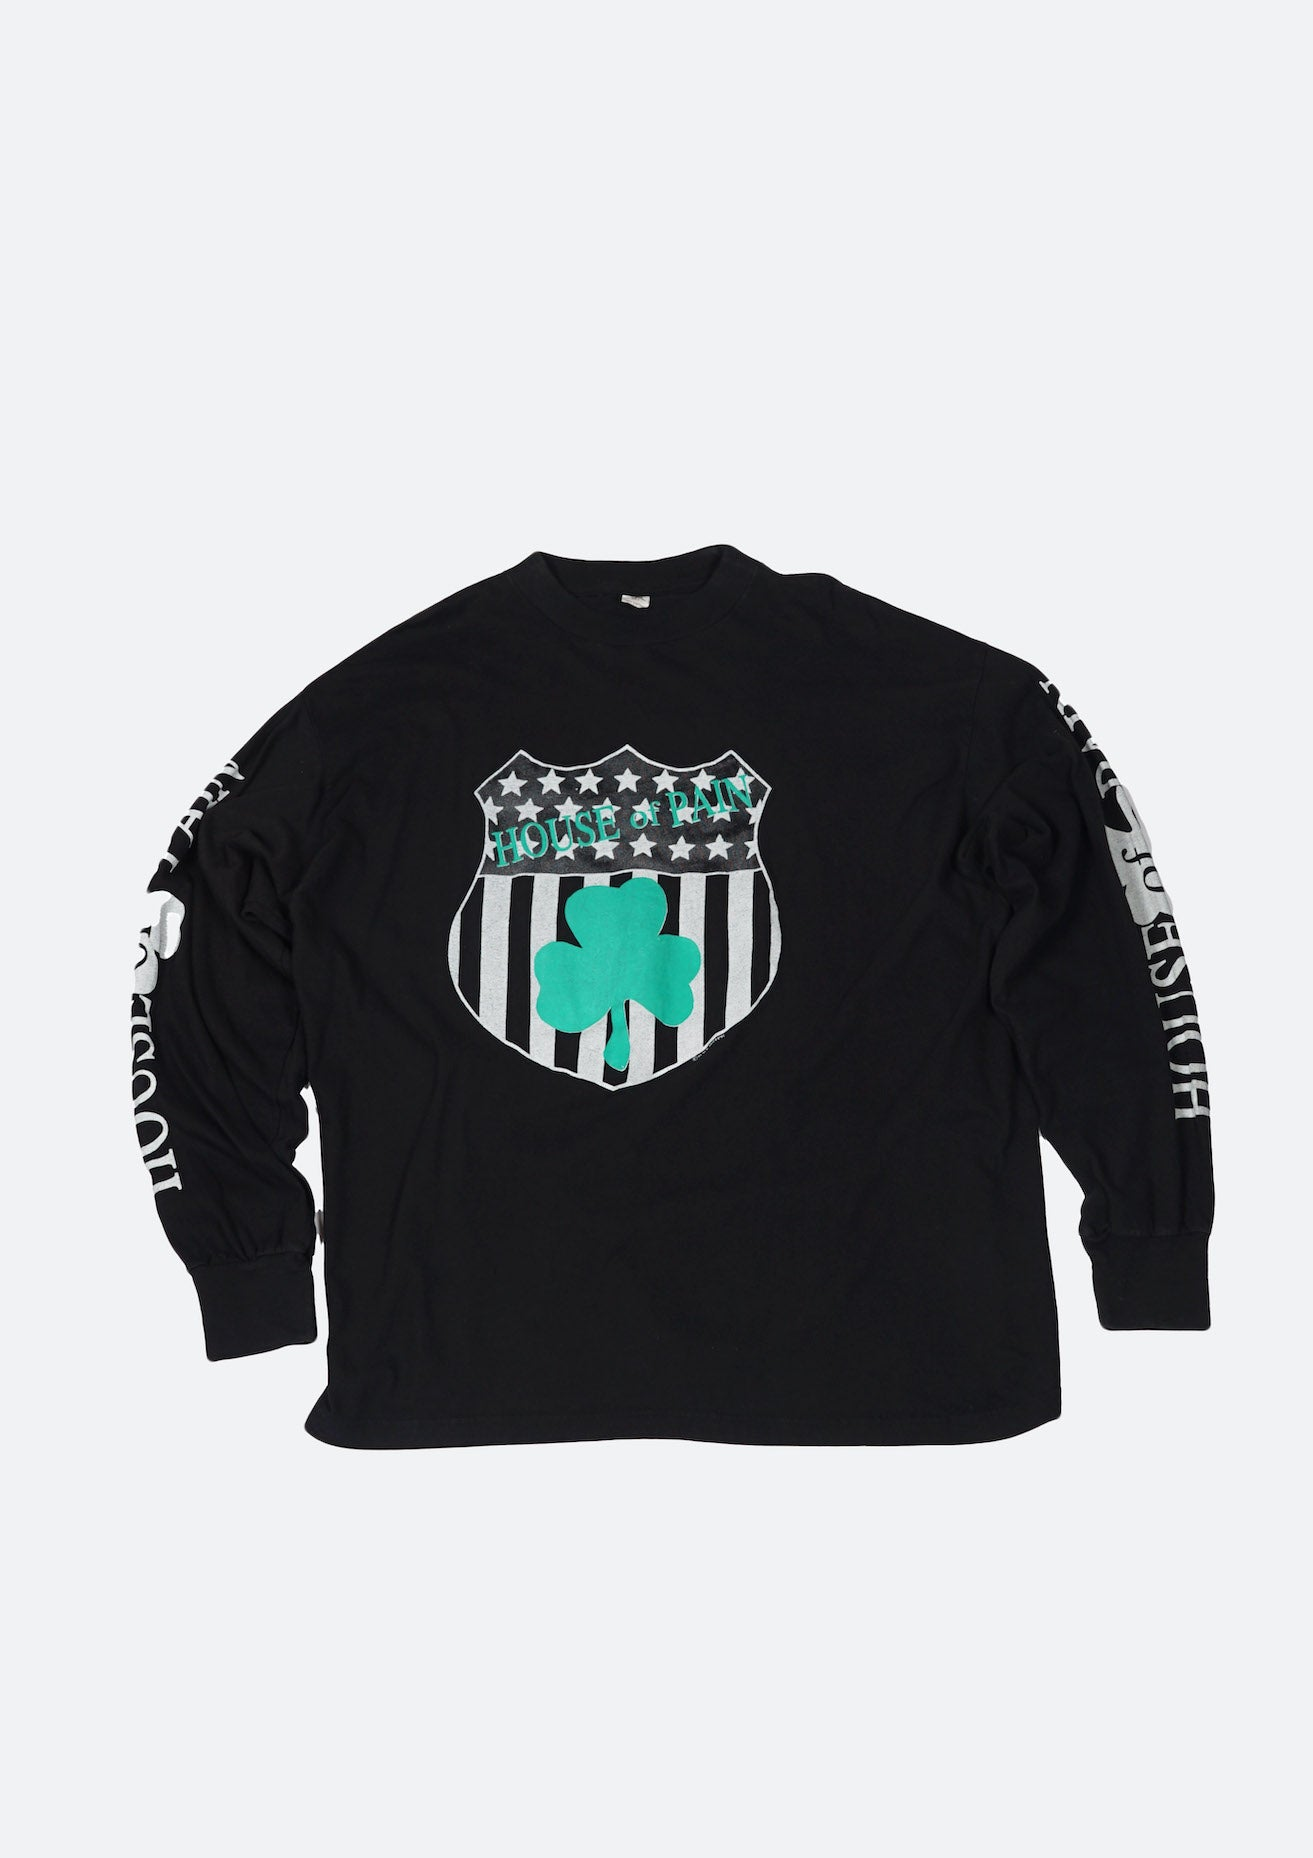 House of Pain L/S Tee